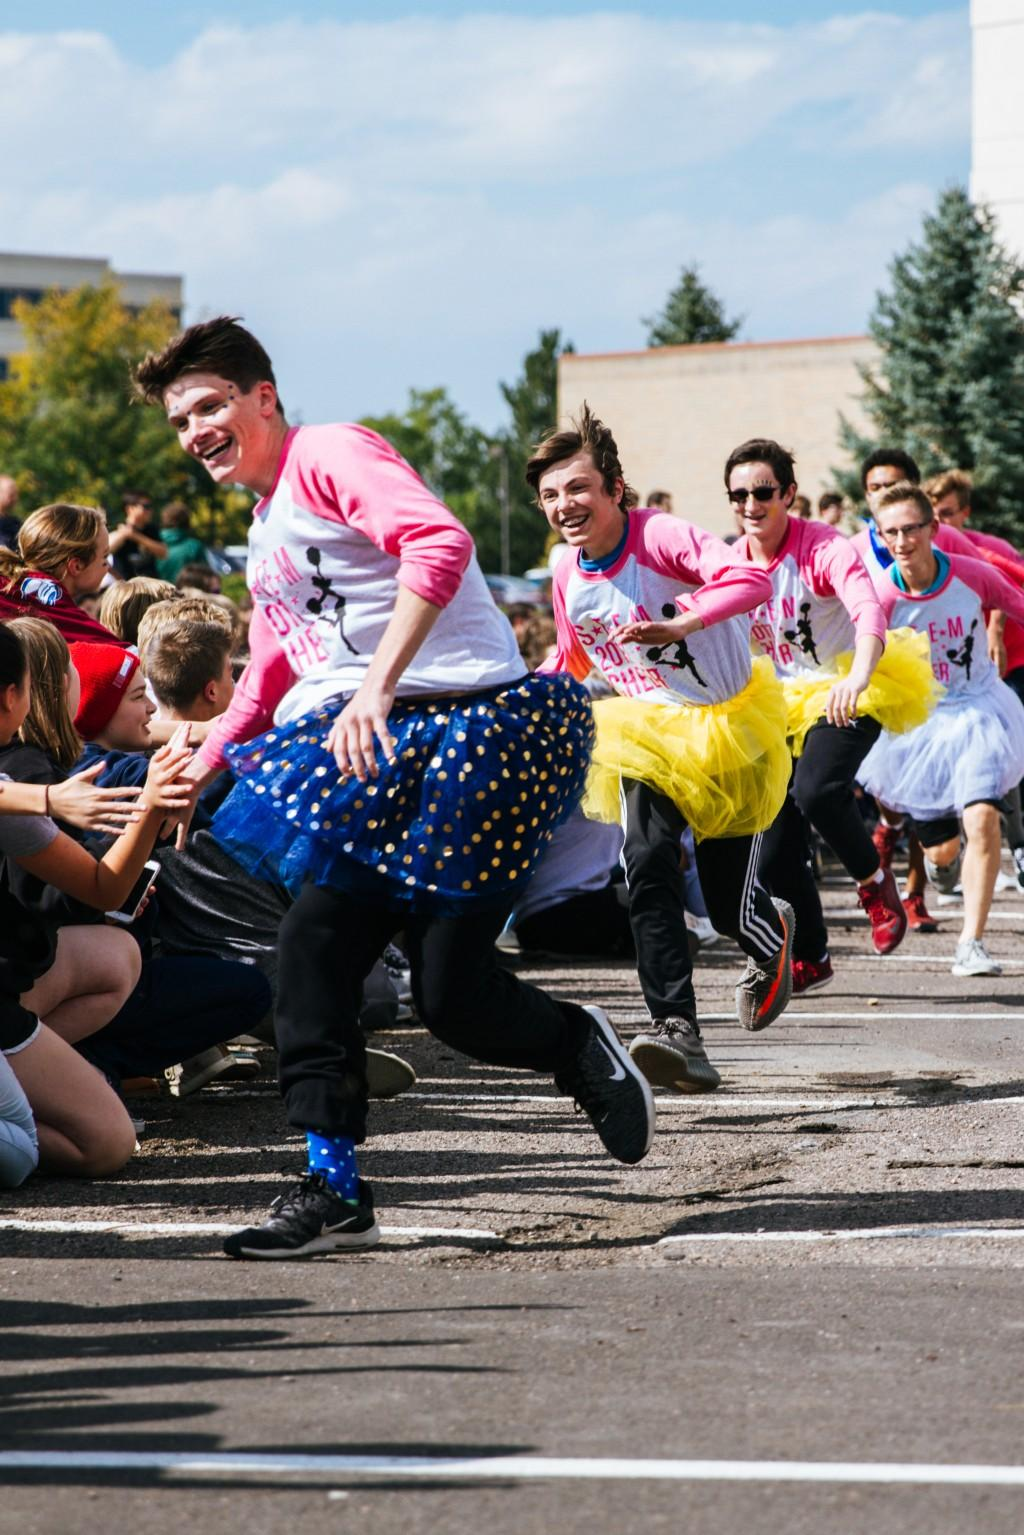 Pep Rally fun, captured by student Zachary Fornelius.